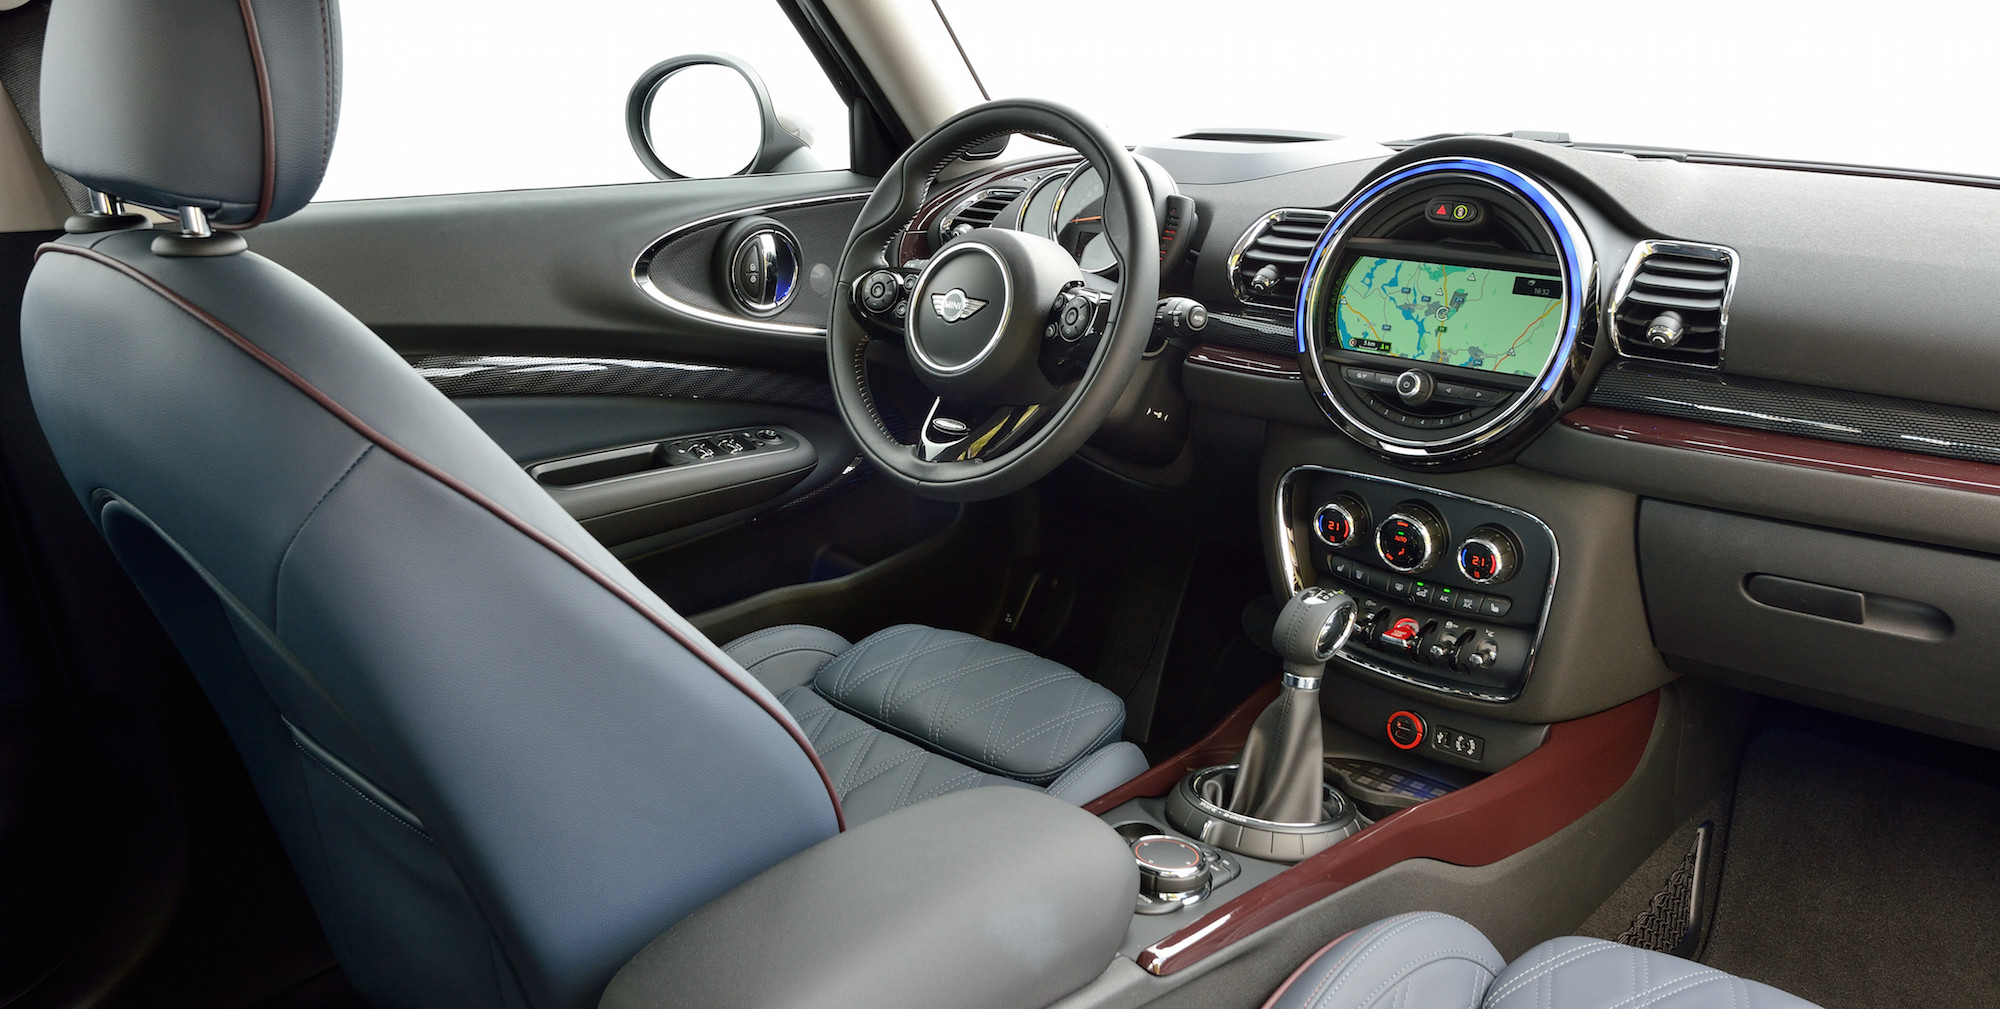 2016 Mini Cooper S Clubman Cockpit Seat (View 11 of 17)